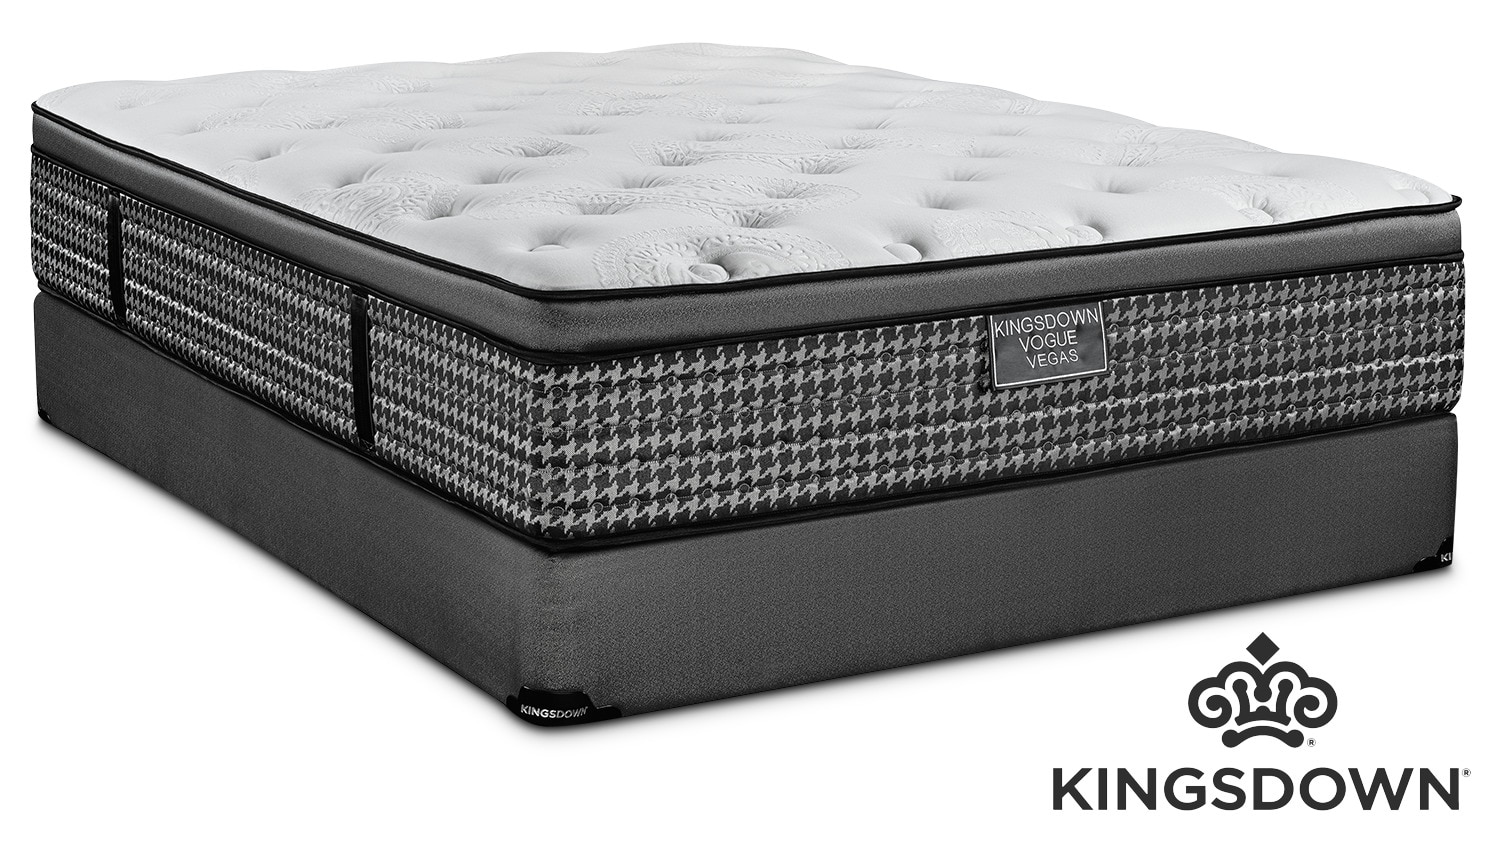 Kingsdown Vegas Cushion Firm Queen Mattress and Boxspring Set